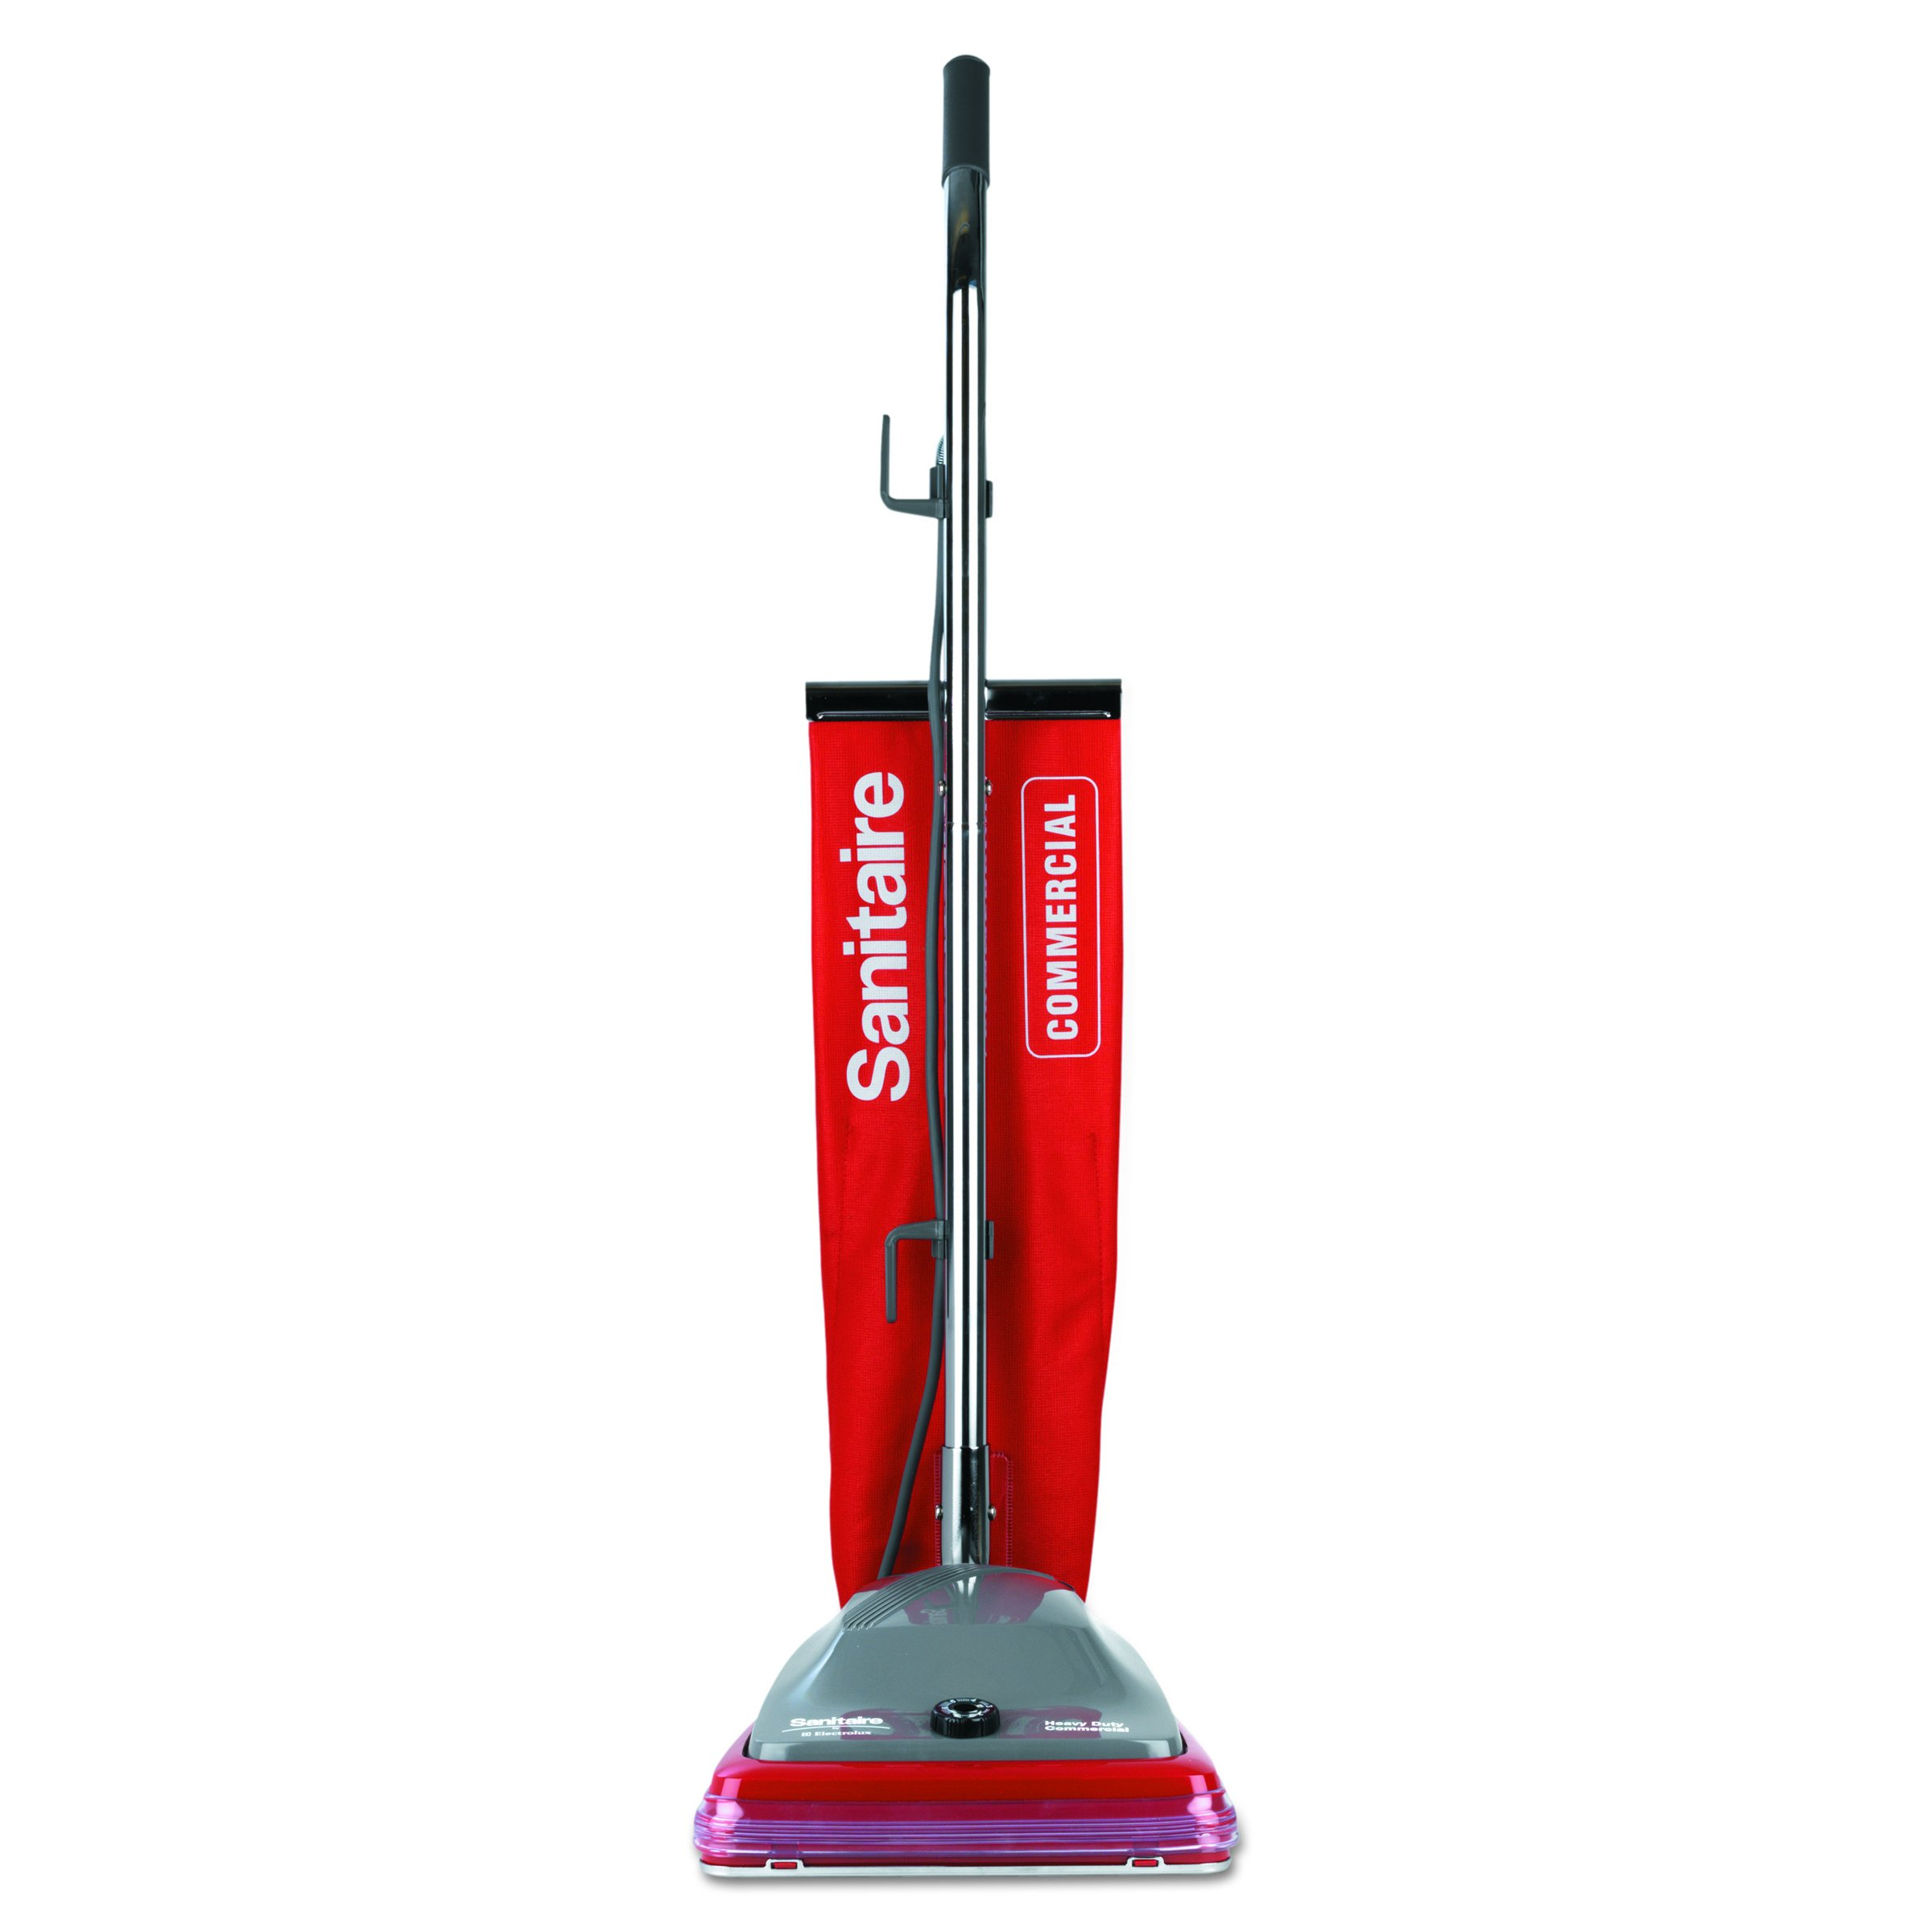 Sanitaire SC684F Vacuum with Vibra-Groomer II, 16lb, Red